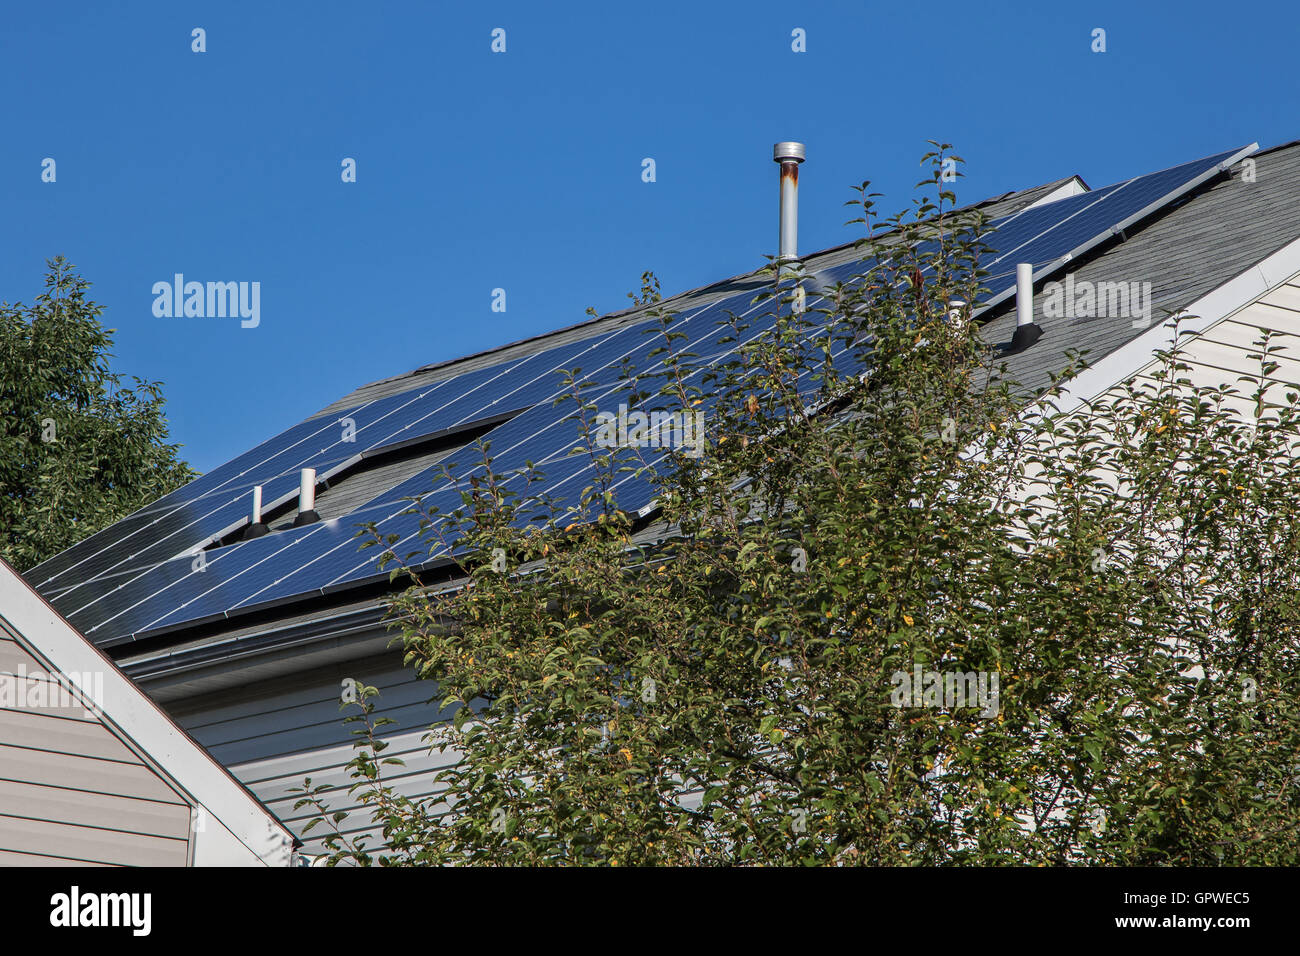 Solar panels installed on a roof of a private home. - Stock Image